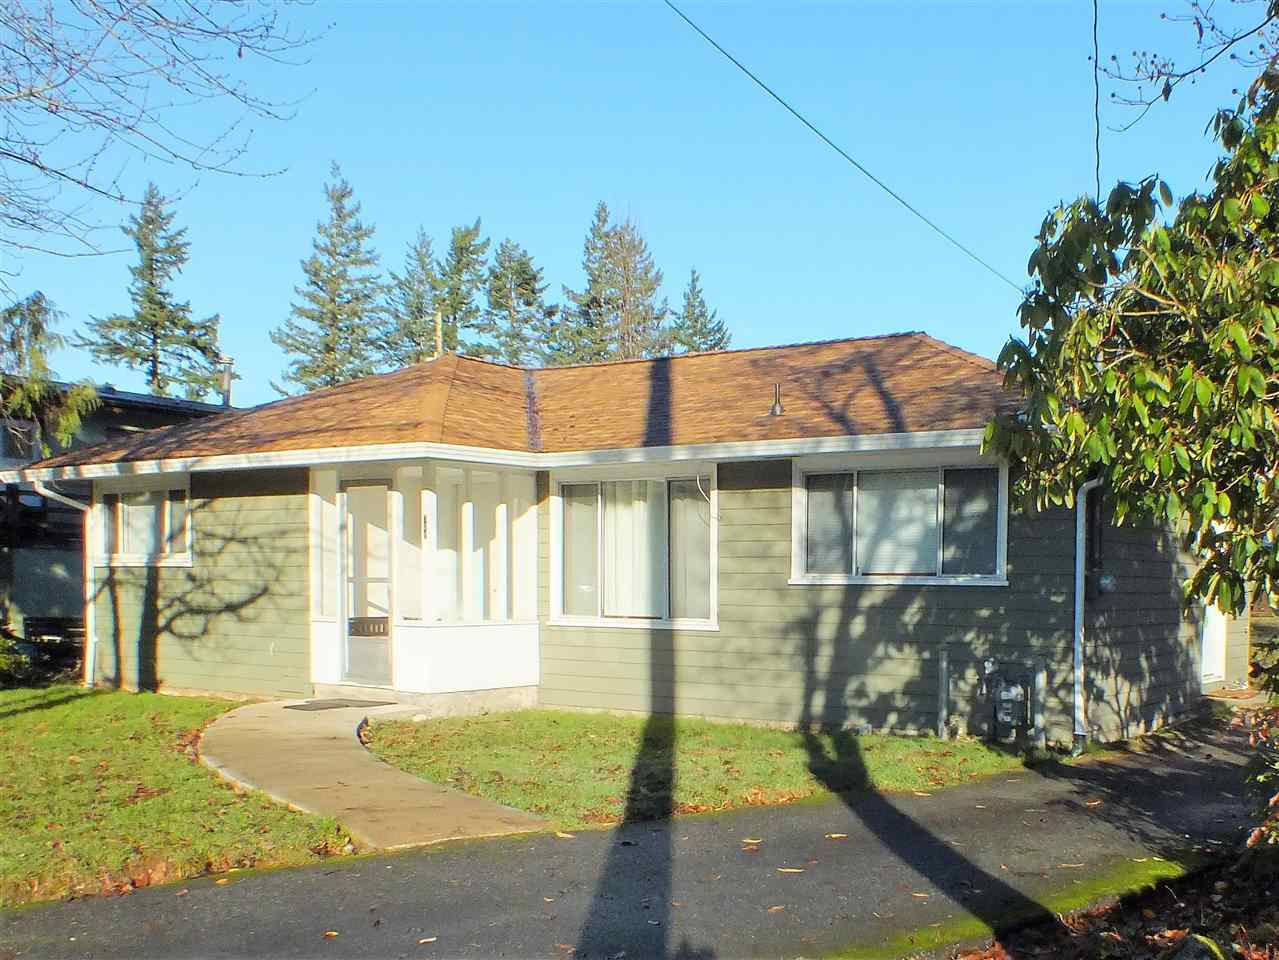 NICELY RENOVATED TWO BEDROOM & 1000 SQ FT RANCHER WALKING DISTANCE TO SCHOOLS, GOLF, REC FACILITY AND DOWNTOWN CORE. LARGE 62X122 MULTI-FAMILY ZONED LOT AND LOCATION MAKE THIS THE PERFECT HOLDING PROPERTY FOR INVESTORS, 1ST TIME HOME OR RETIREMENT PURCHASE. BACK YARD IS EASILY VEHICLE ACCESSIBLE AND WOULD MAKE A GREAT PLACE TO BUILD A SHOP OR GARAGE AND CARRIAGE HOUSE COMBO. NEW ROOF EARLY 2017, REFURBISHED HARDWOOD FLOORING, RECENTLY RENOVATED KITCHEN W/CUSTOM CABINETS, BATH WITH SIDE BY SIDE TUB AND SHOWER AND HIGH EFFICIENCY GAS FURNACE - RARE LISTING UNDER 400K READY TO MOVE INTO. MAGNIFICENT MOUNTAIN VIEWS.